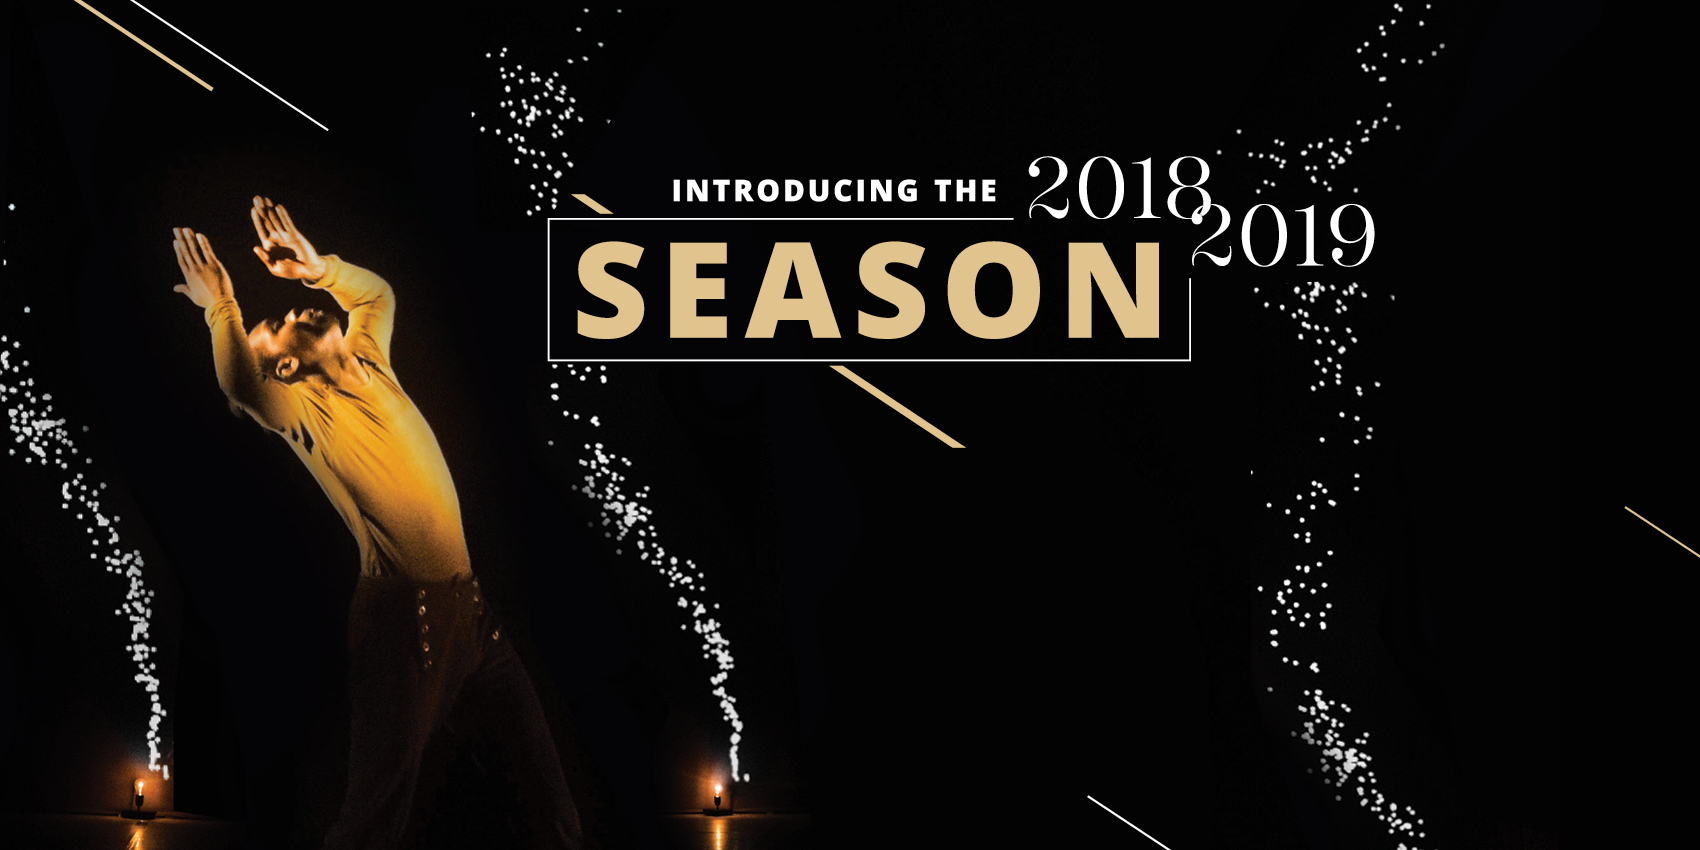 Introducing the 2018-2019 Season